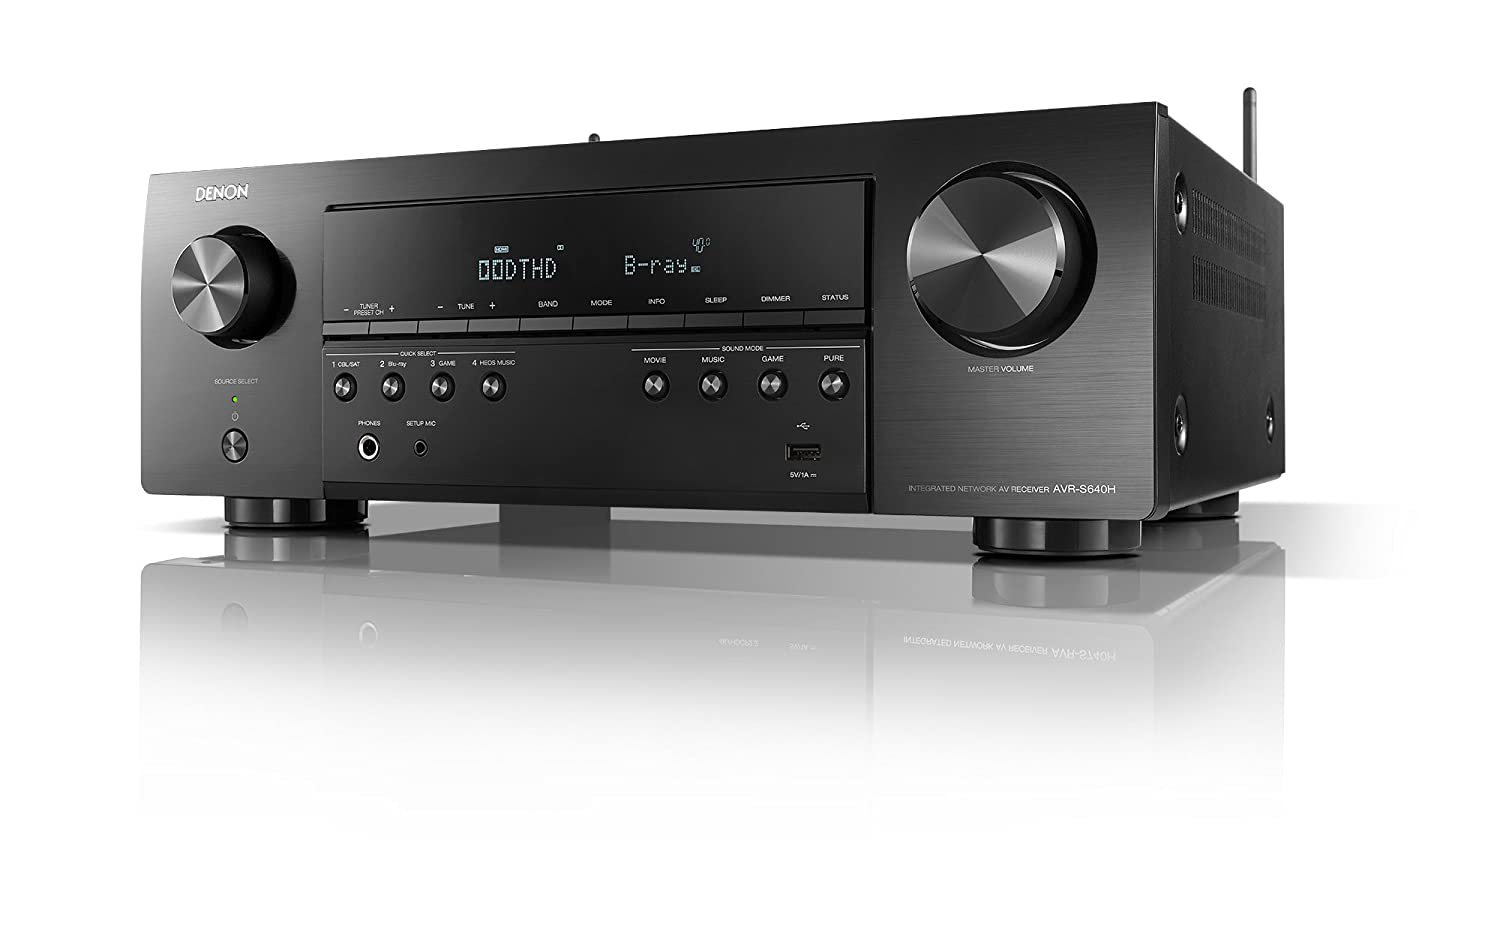 Denon AVR-S640H Audio Video Receiver, 5.2 Channel 4K Ultra HD Home Theater Surround Sound and Music Streaming System - Wi-Fi, Bluetooth, Airplay, ...